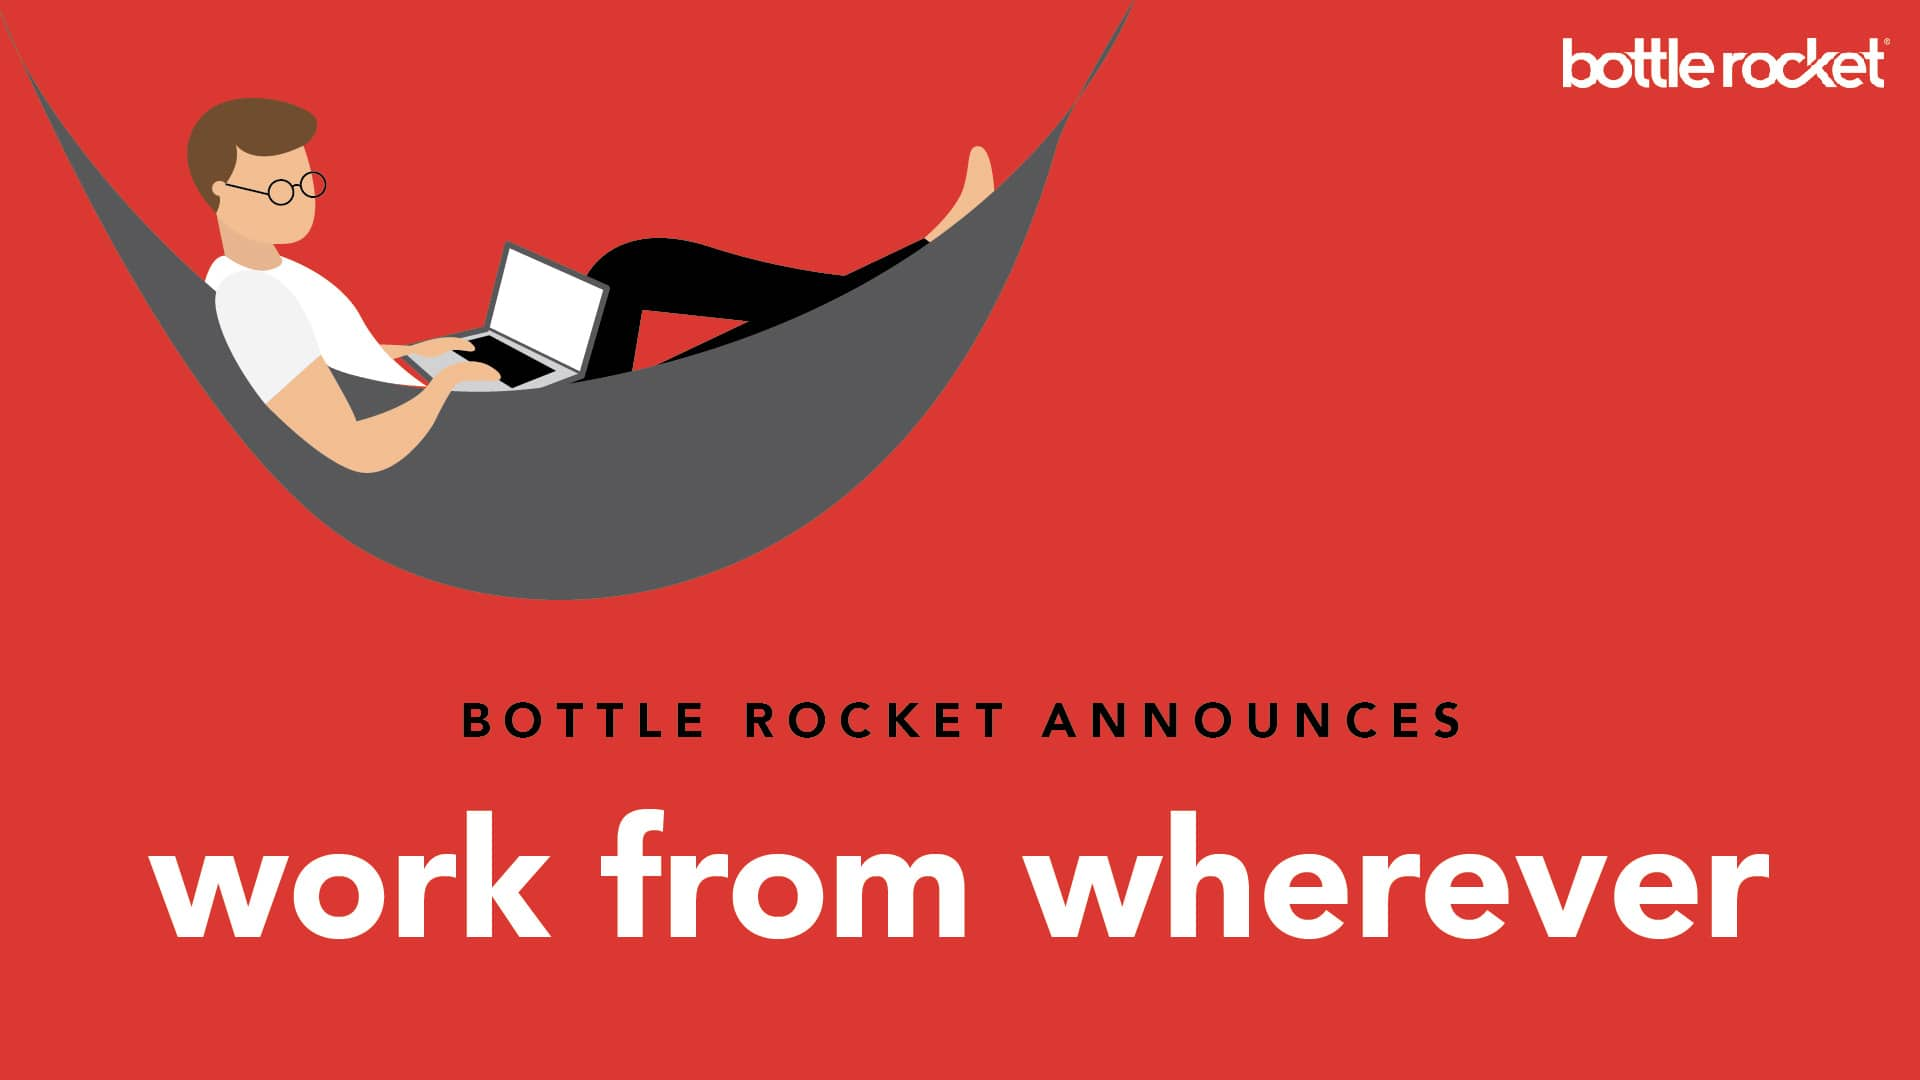 """Bottle Rocket Founder Announces A Re-energized """"Work from Wherever"""" Future for the Company"""